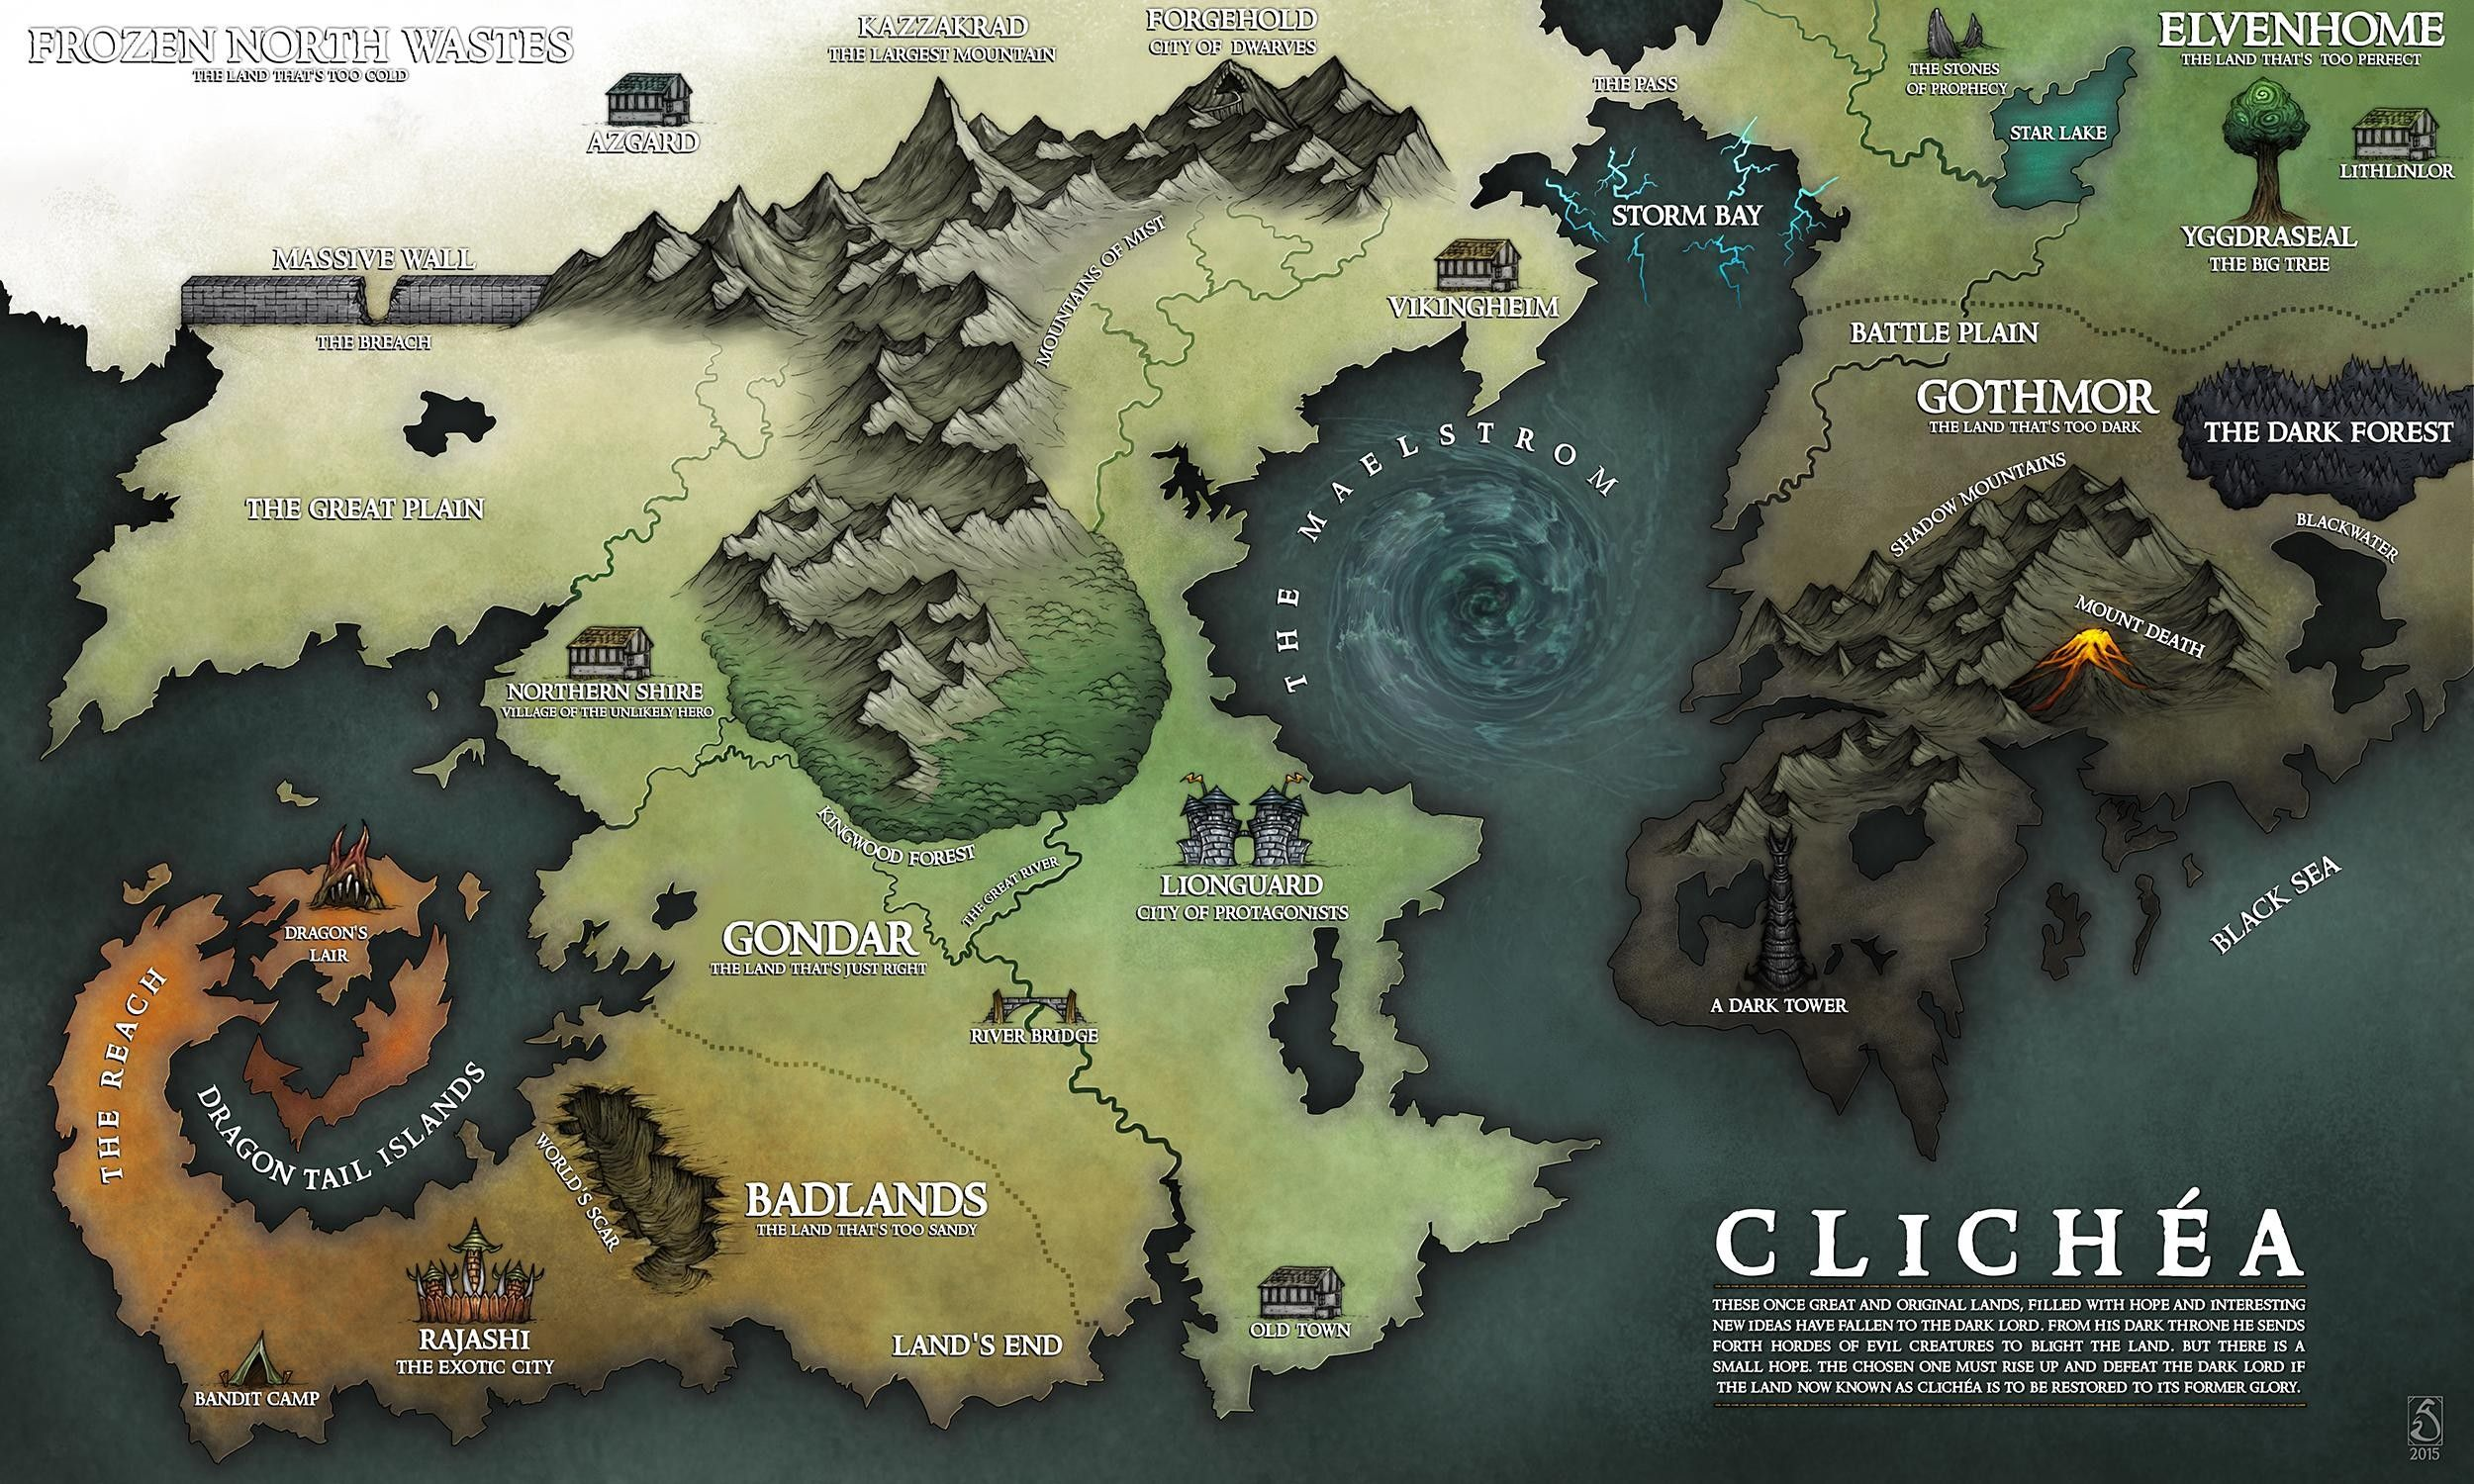 Pin by lysha on rpg fantasy locations pinterest rpg a map based on fantasy tropes that pokes a little fun at unoriginal map makers map of clichea gumiabroncs Choice Image